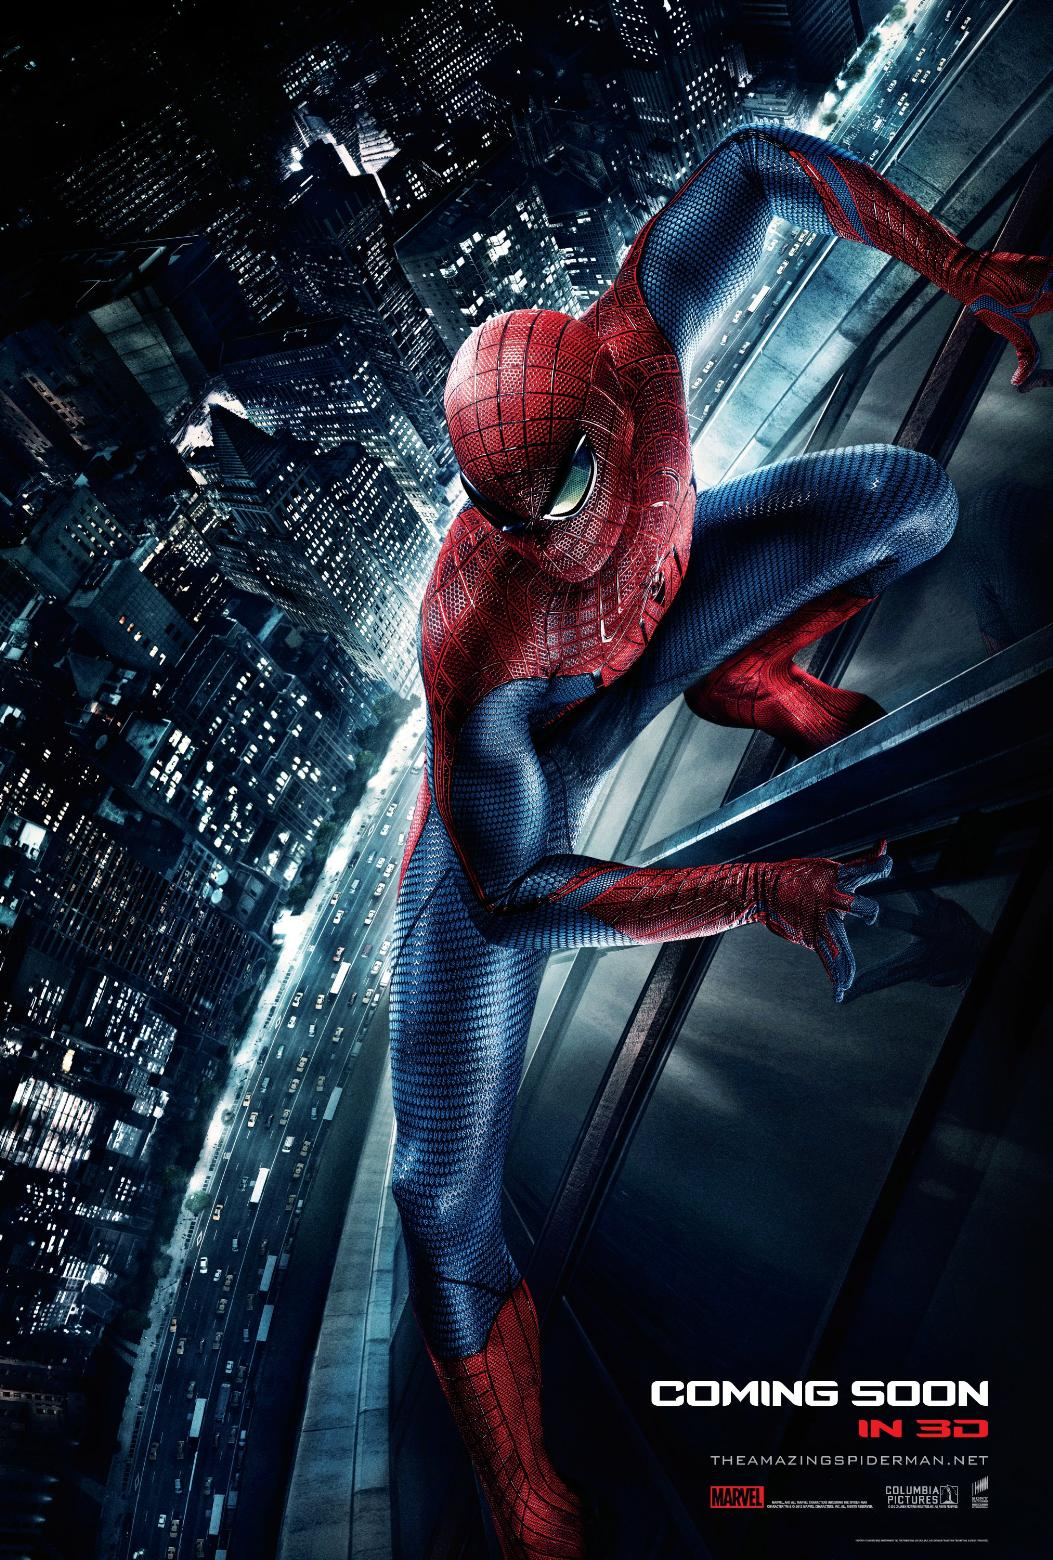 Fantastic Wallpaper Home Screen Spiderman - spidermanpsoter3  Best Photo Reference_258849.jpg